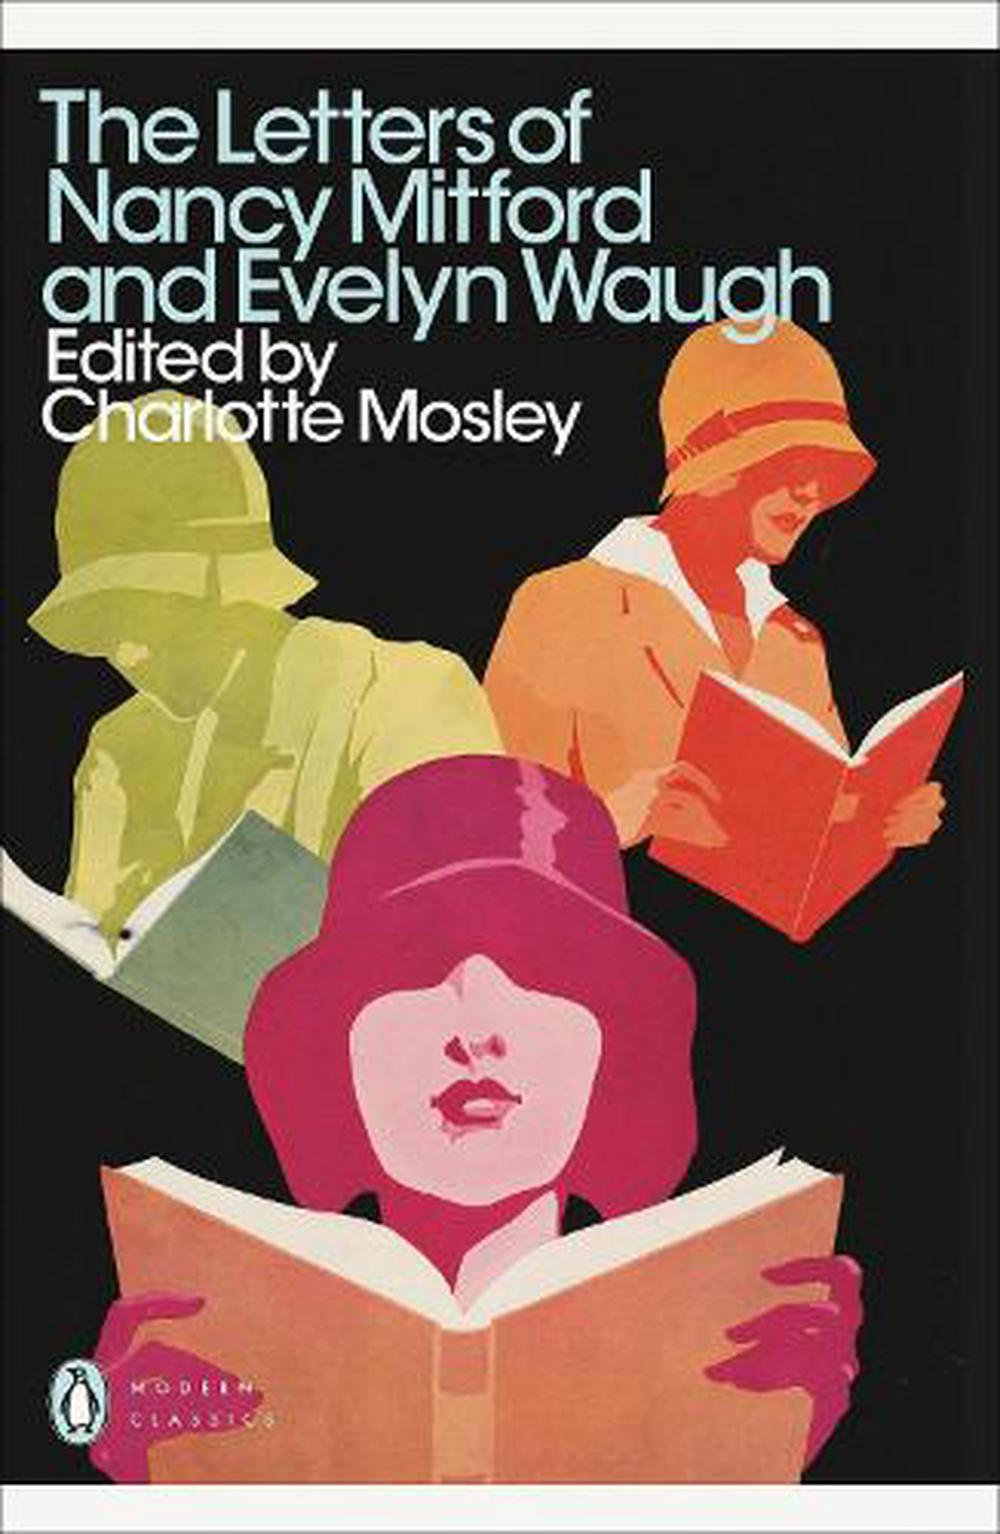 Letters of Nancy Mitford and Evelyn Waugh